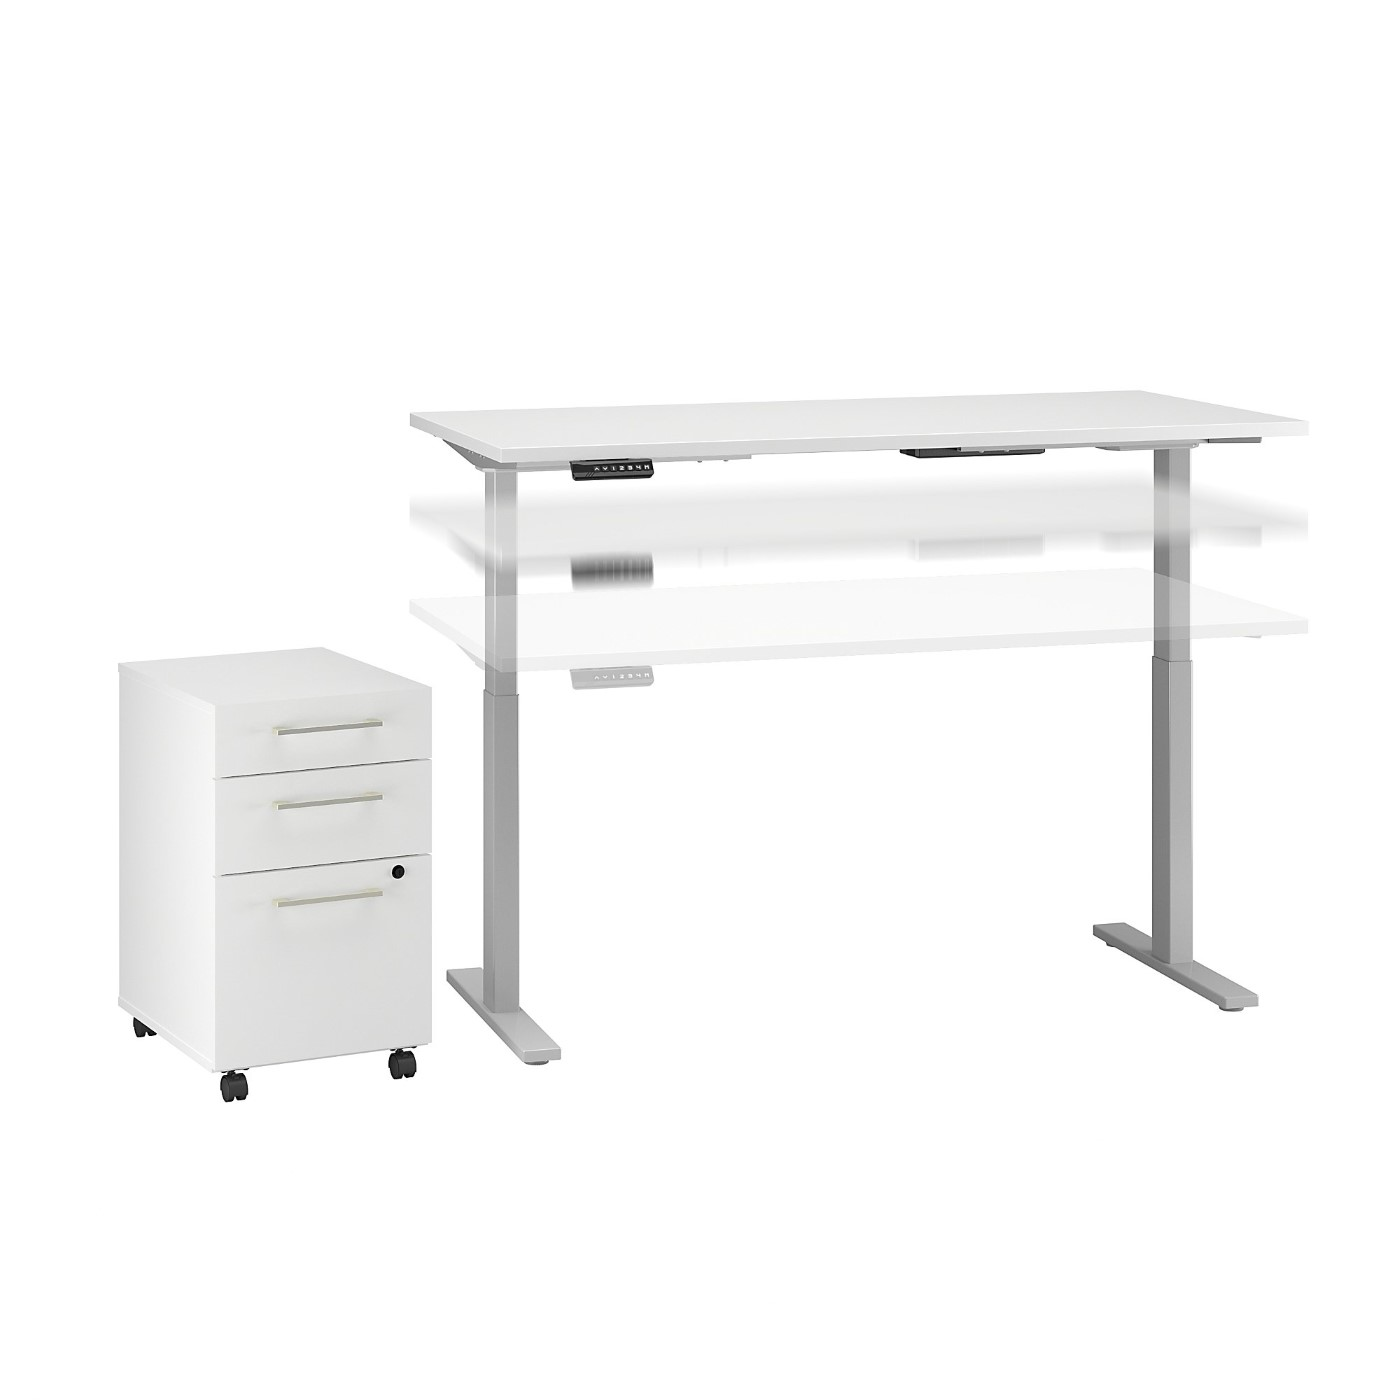 MOVE 60 SERIES BY BUSH BUSINESS FURNITURE 60W X 30D HEIGHT ADJUSTABLE STANDING DESK WITH STORAGE. FREE SHIPPING